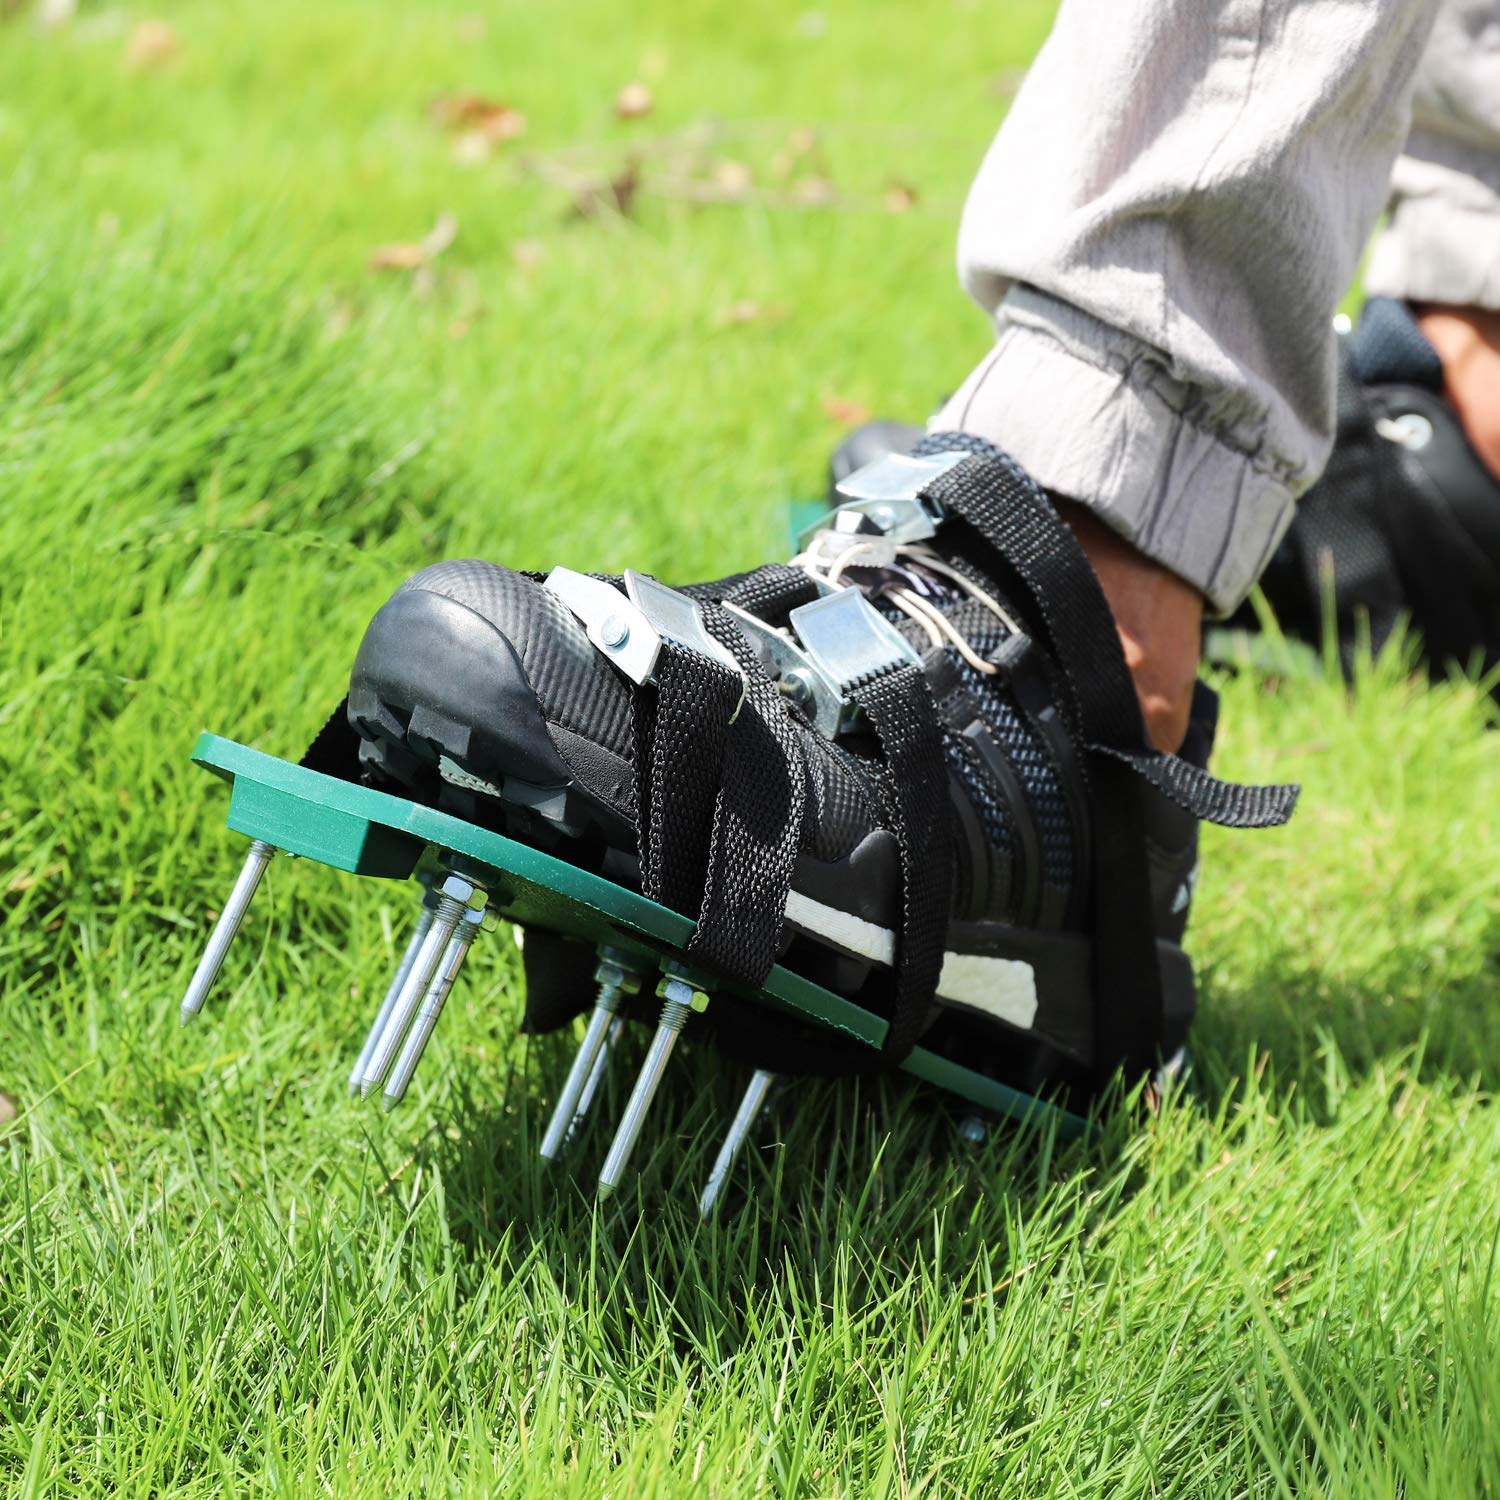 Wistar Lawn Aerator Shoes Metal Buckles and 3 Straps - Heavy Duty Spiked Sandals for Aerating Your Lawn or Yard, Universal Size That Fits All by Wistar